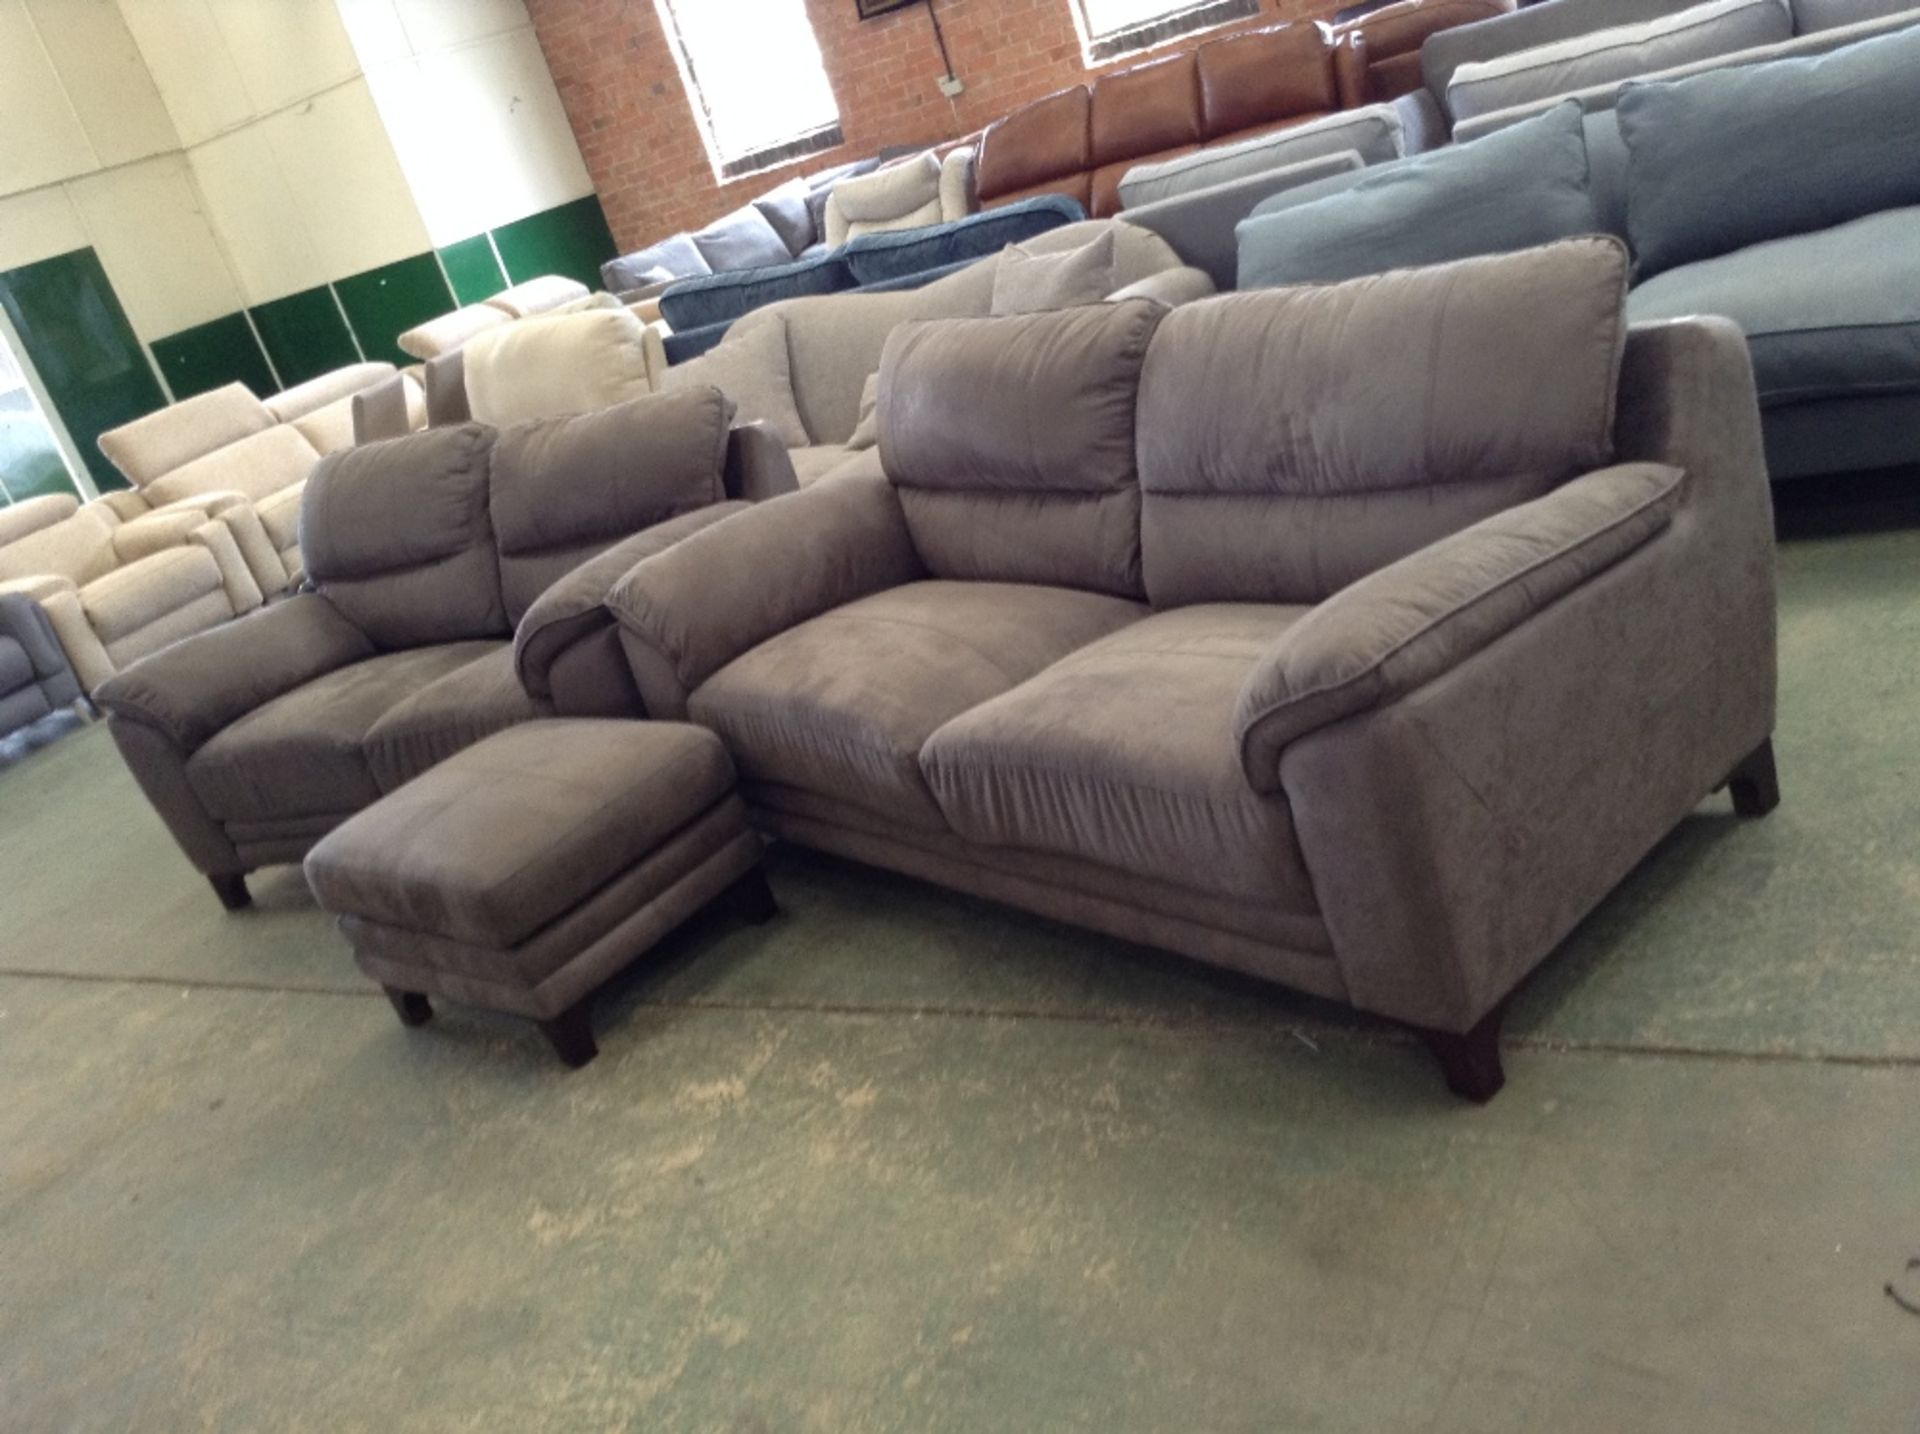 Lot 56 - GREY SADDLE 3 SEATER SOFA 2 SEATER SOFA AND FOOTST